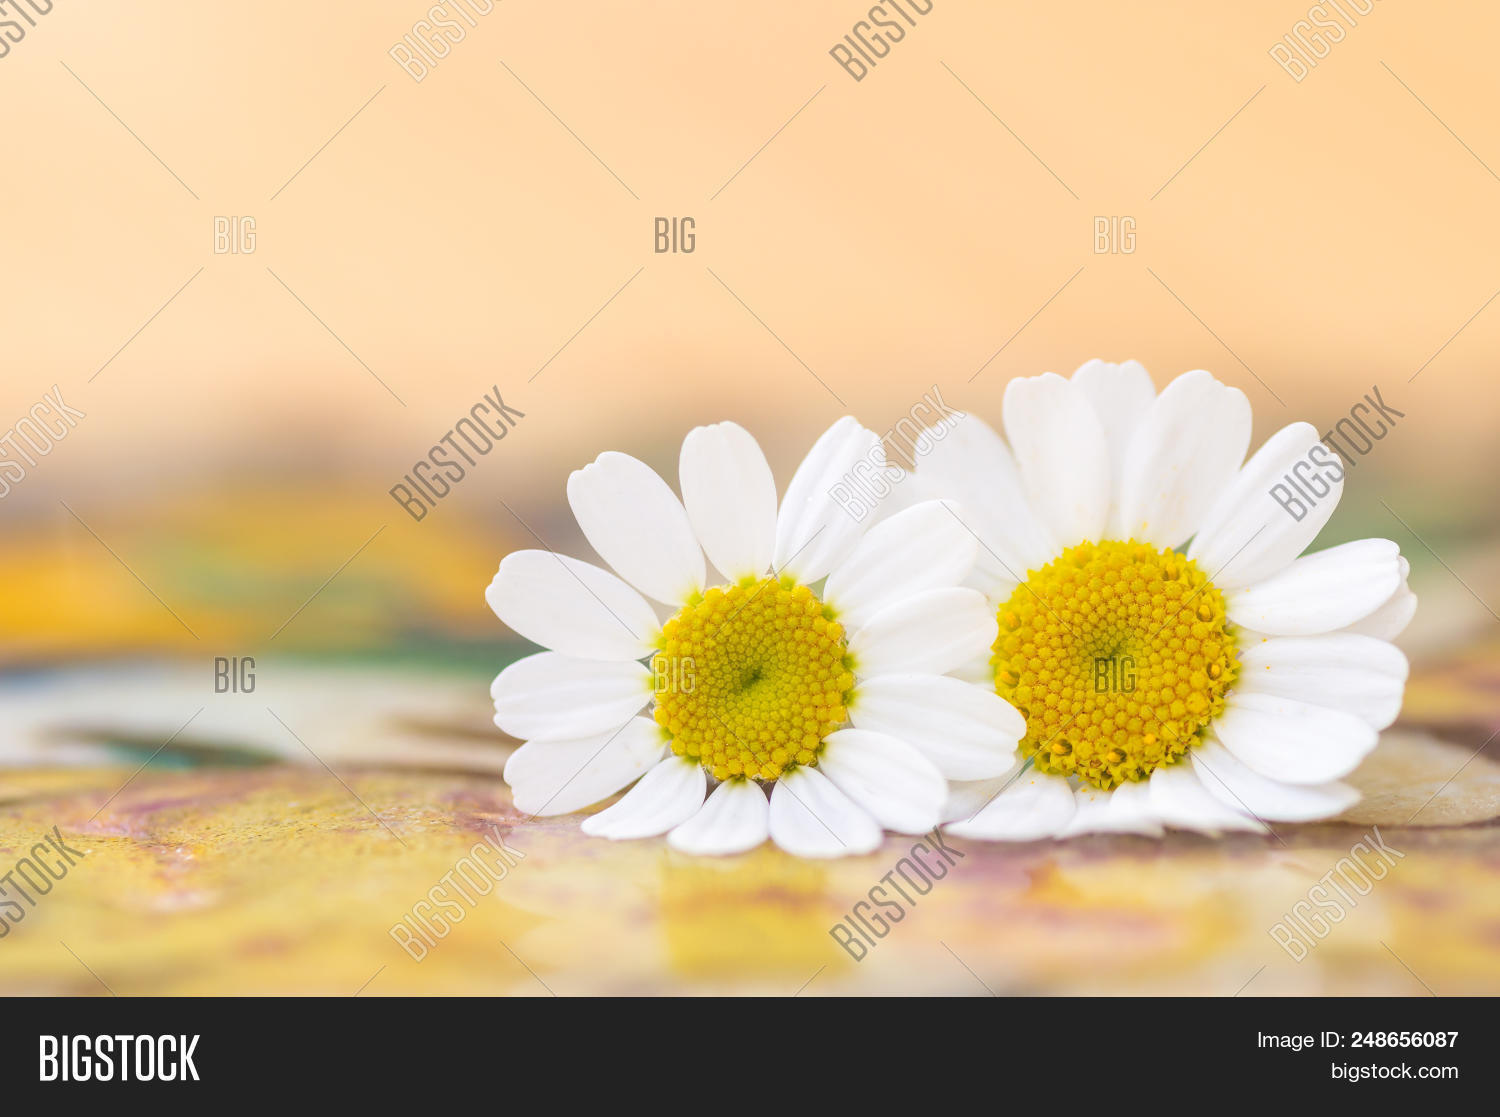 Feverfew flowers image photo free trial bigstock feverfew flowers close up detail of two daisy like flowers with a brightly lit colourful izmirmasajfo